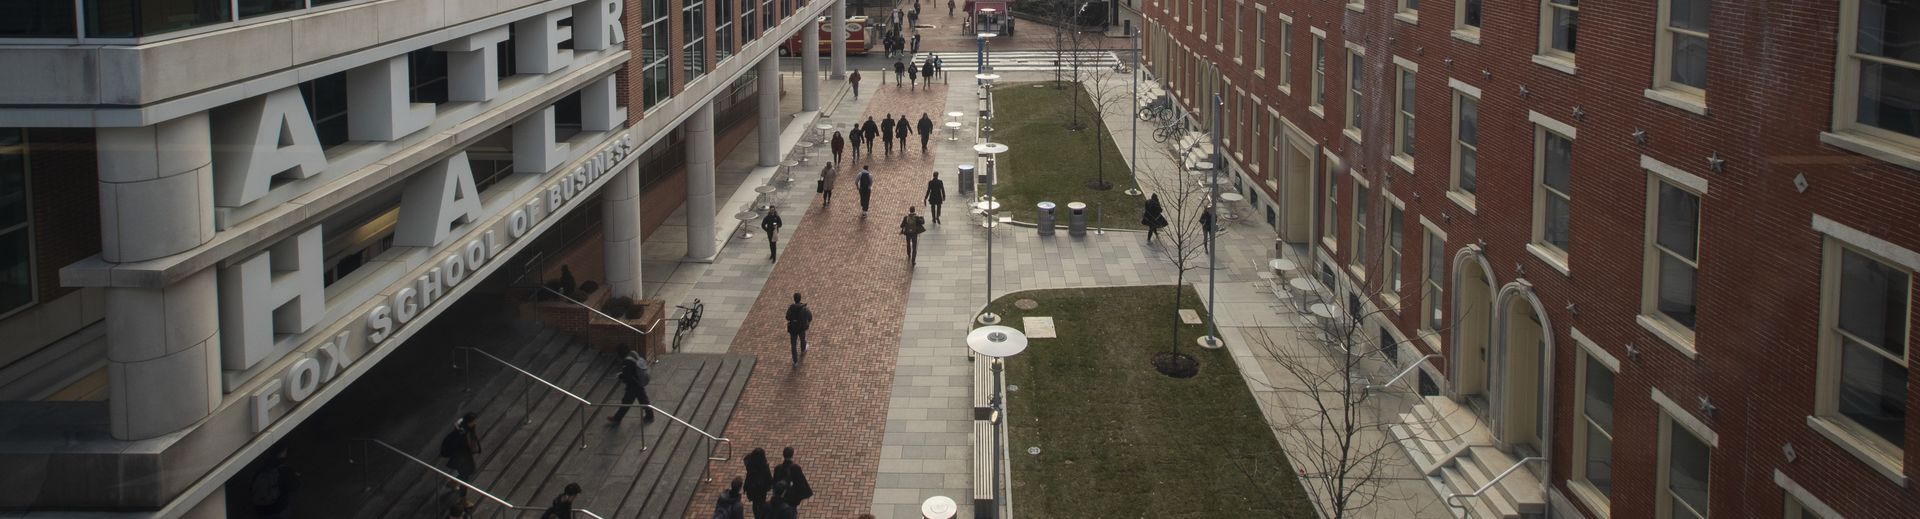 Temple University's Liacouras Walk and Alter Hall.